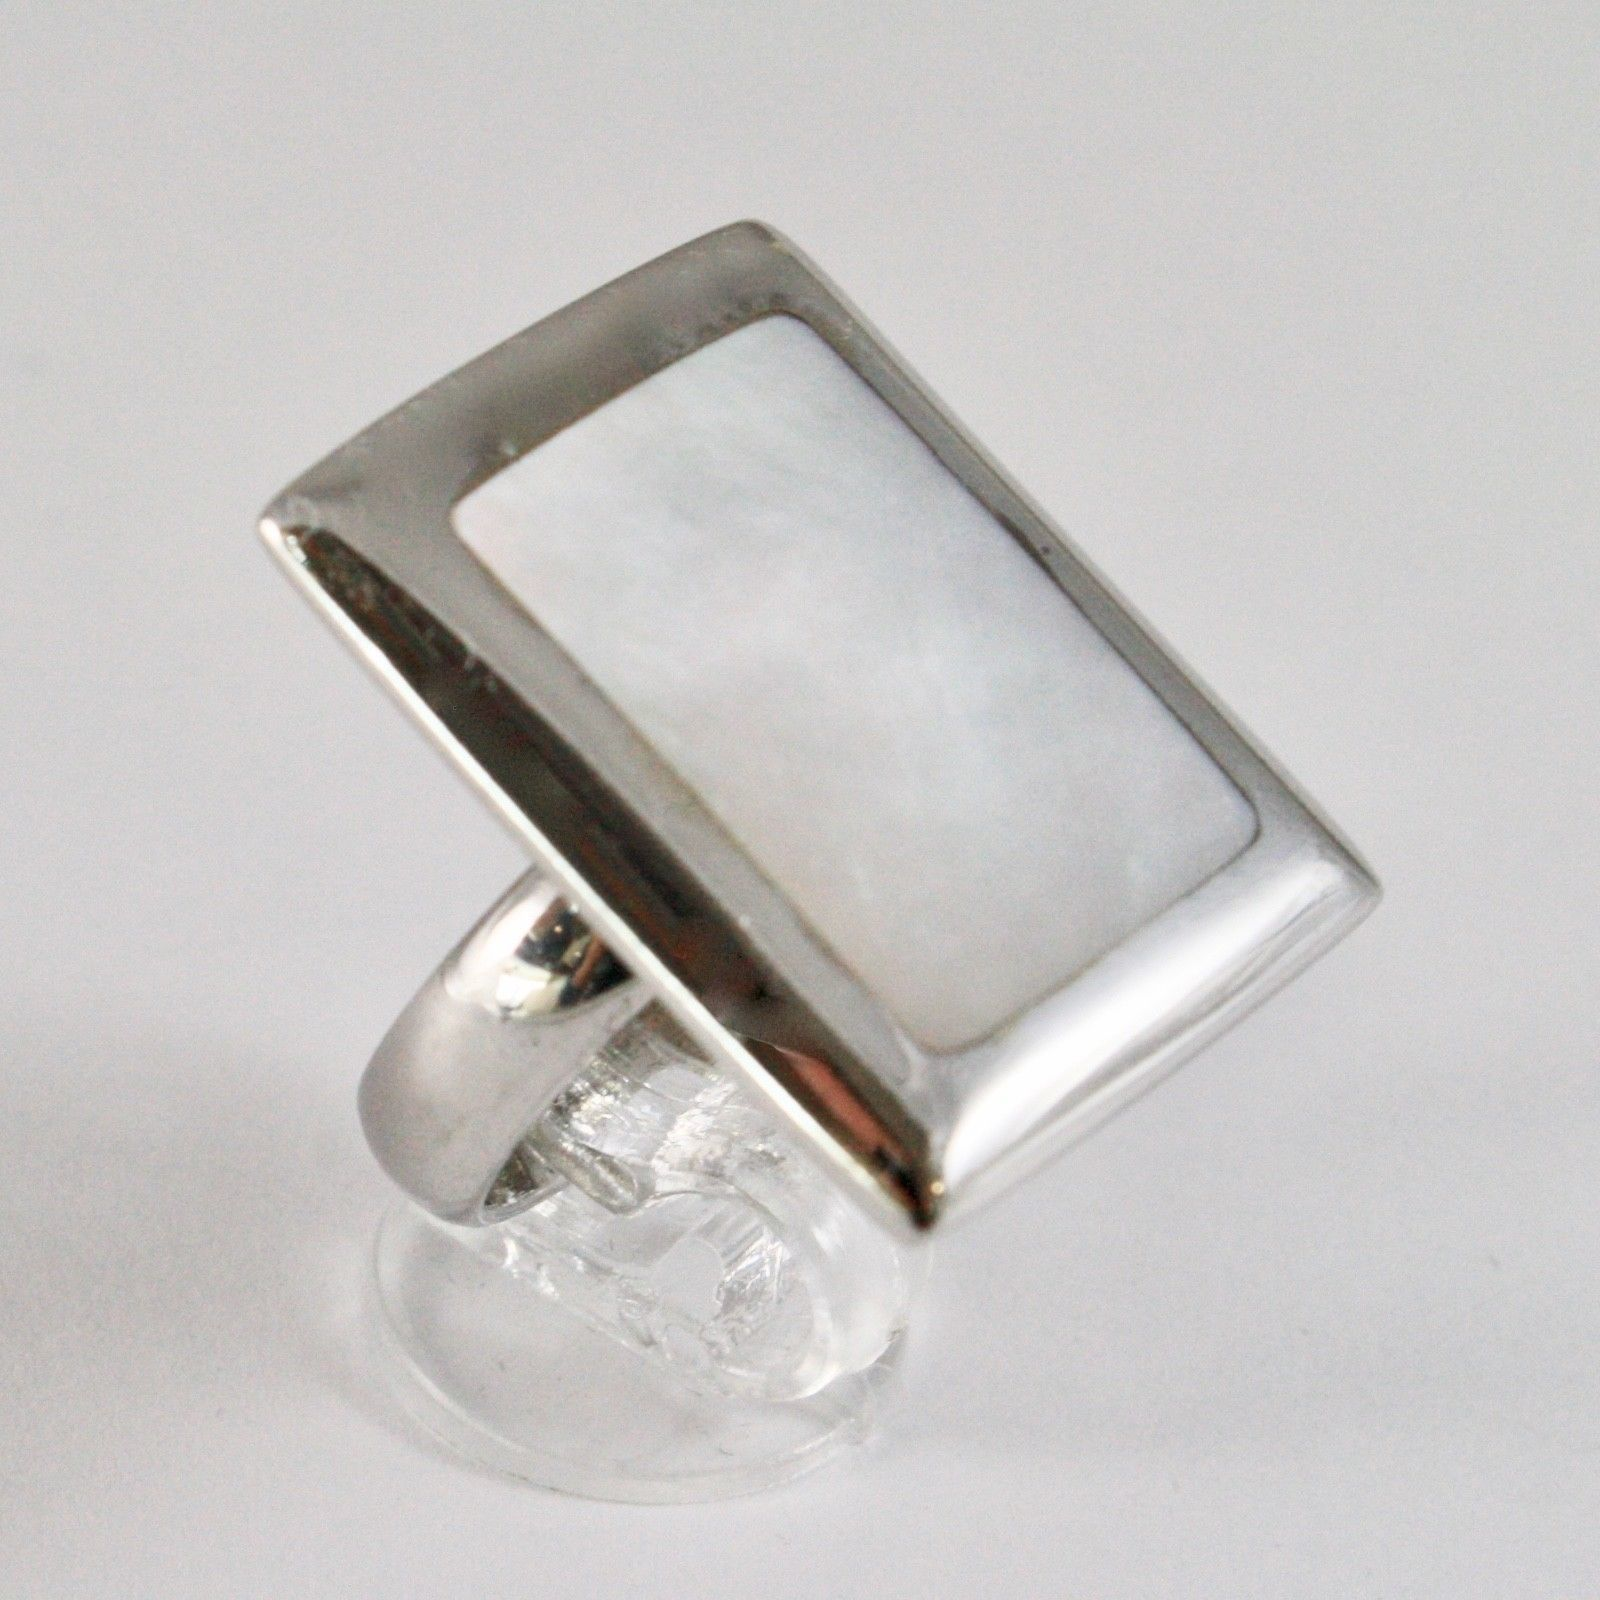 ANILLO DE PLATA 925 CON MADRE PERLA BLANCA NATURAL RECTANGULAR